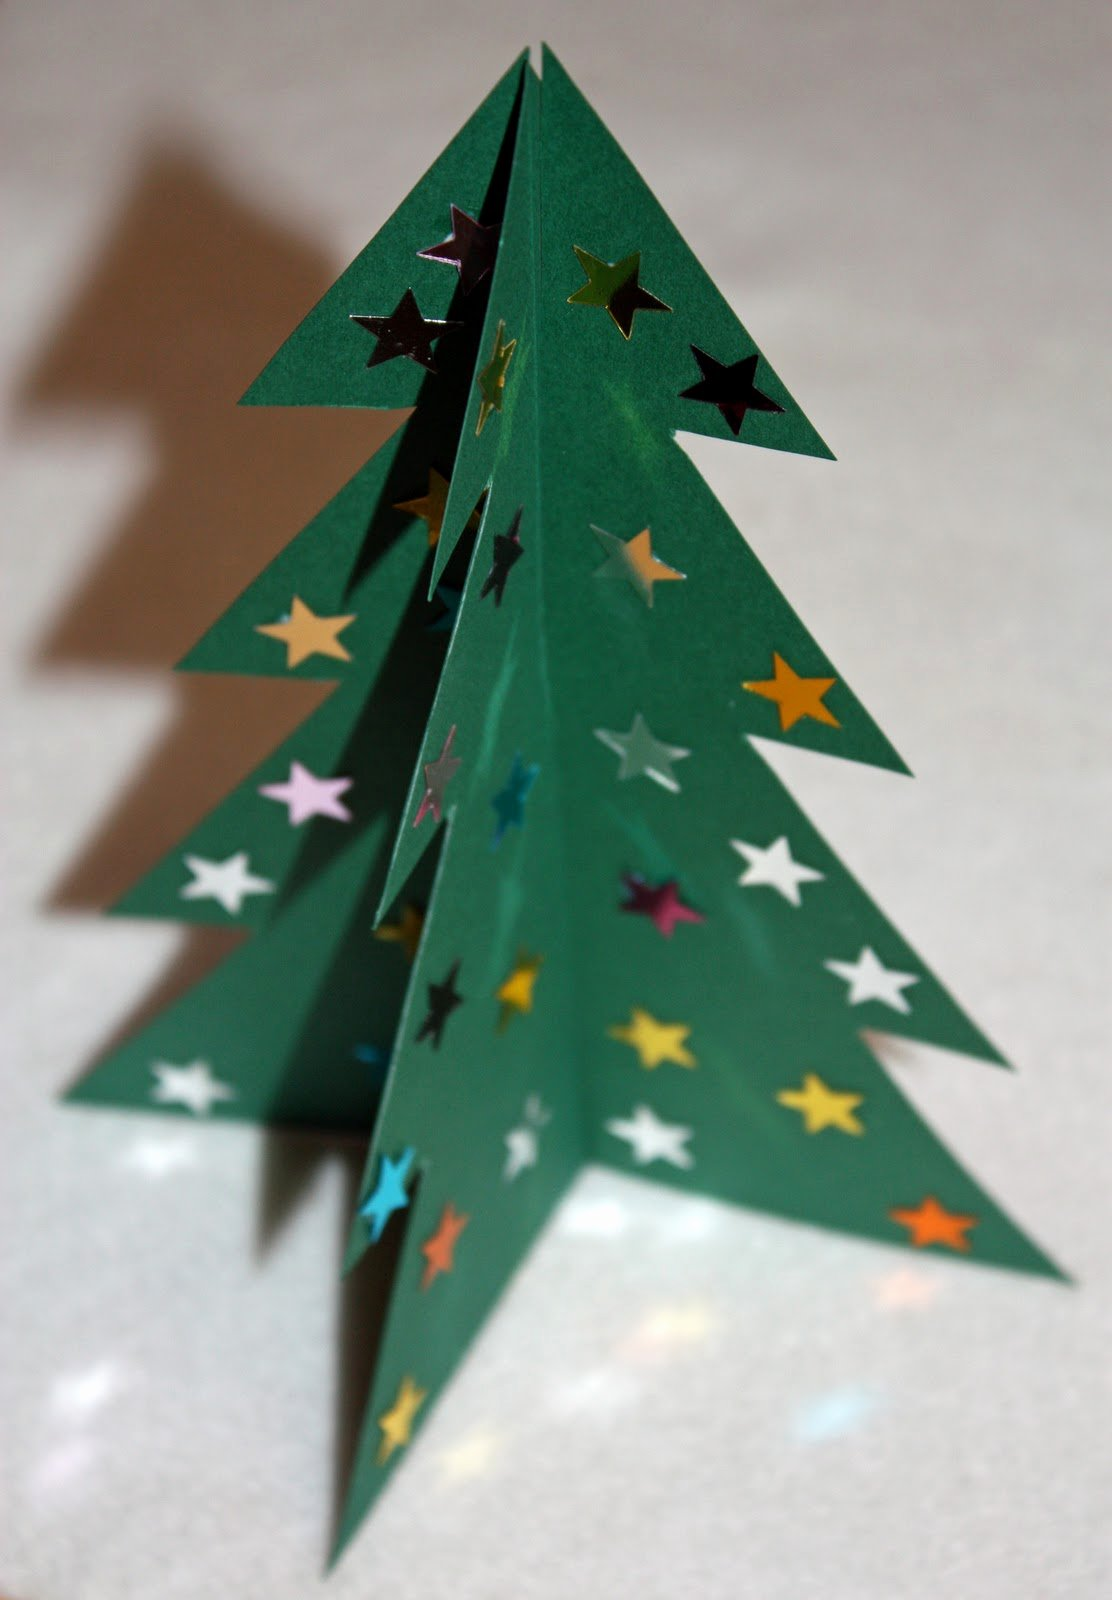 3d Christmas Tree Template Unique Craft and Activities for All Ages Make A 3d Card